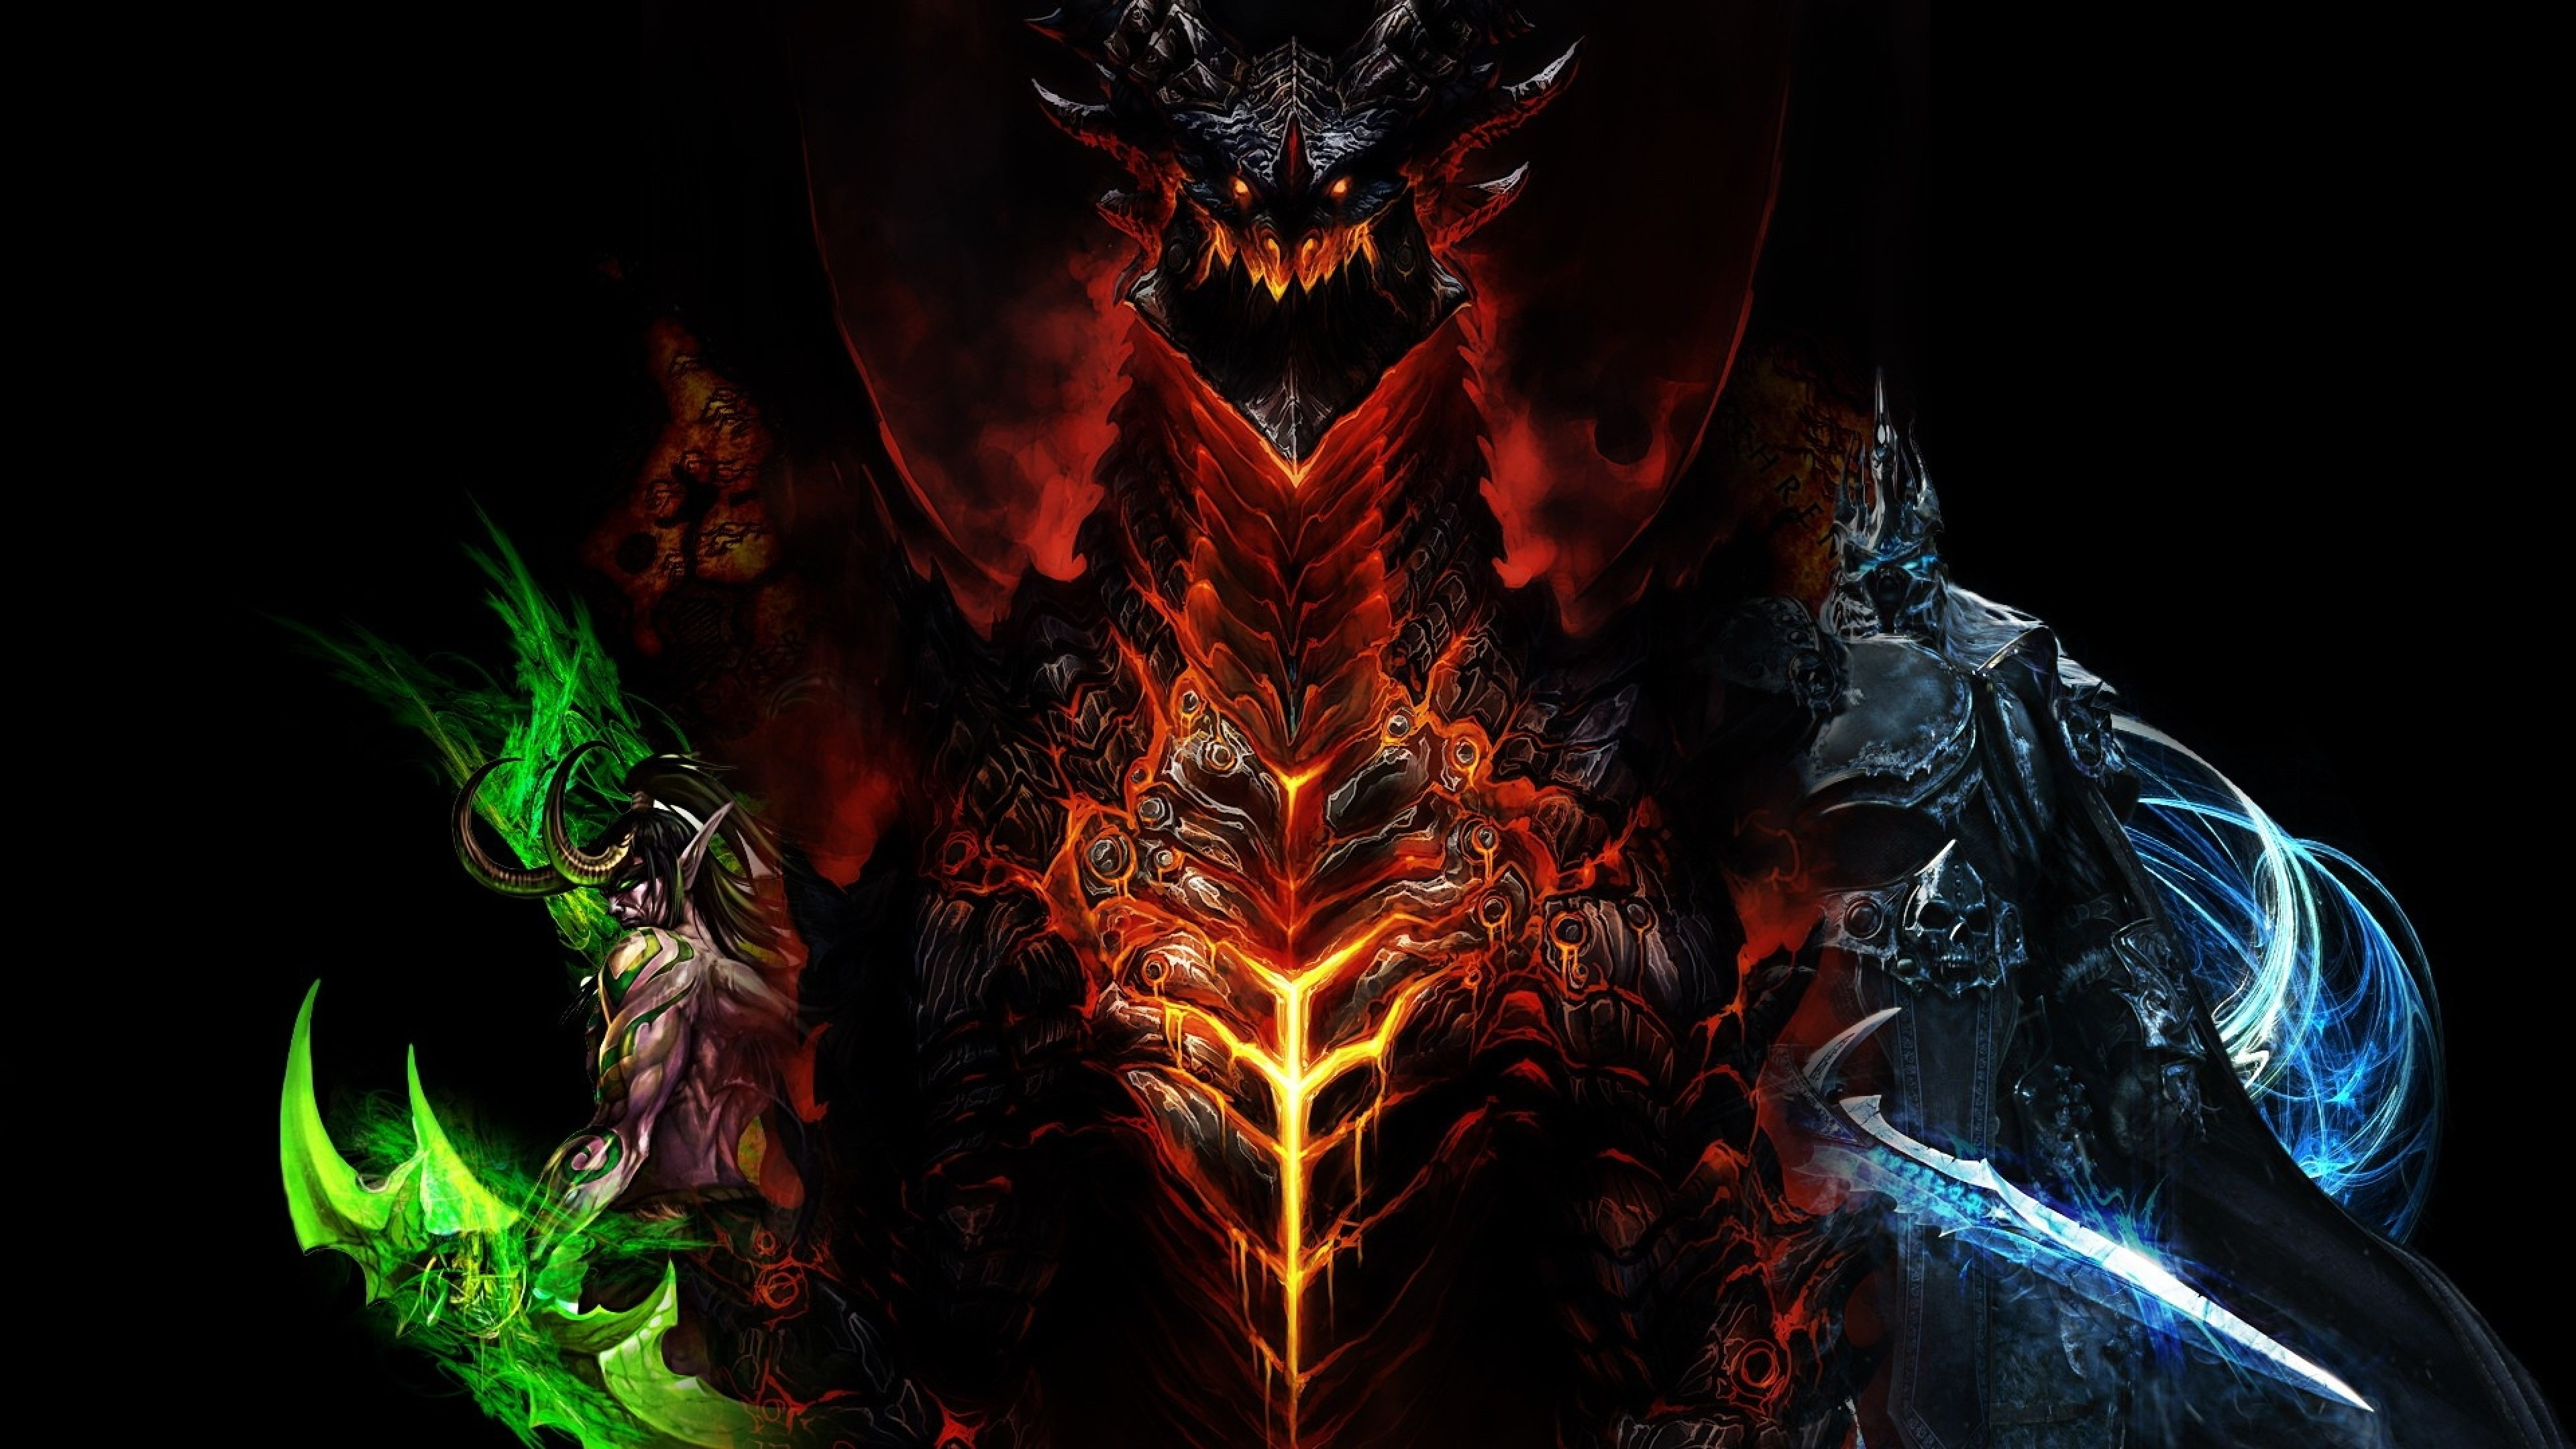 ghost and demon wallpapers free download hd latest new - HD1920×1080